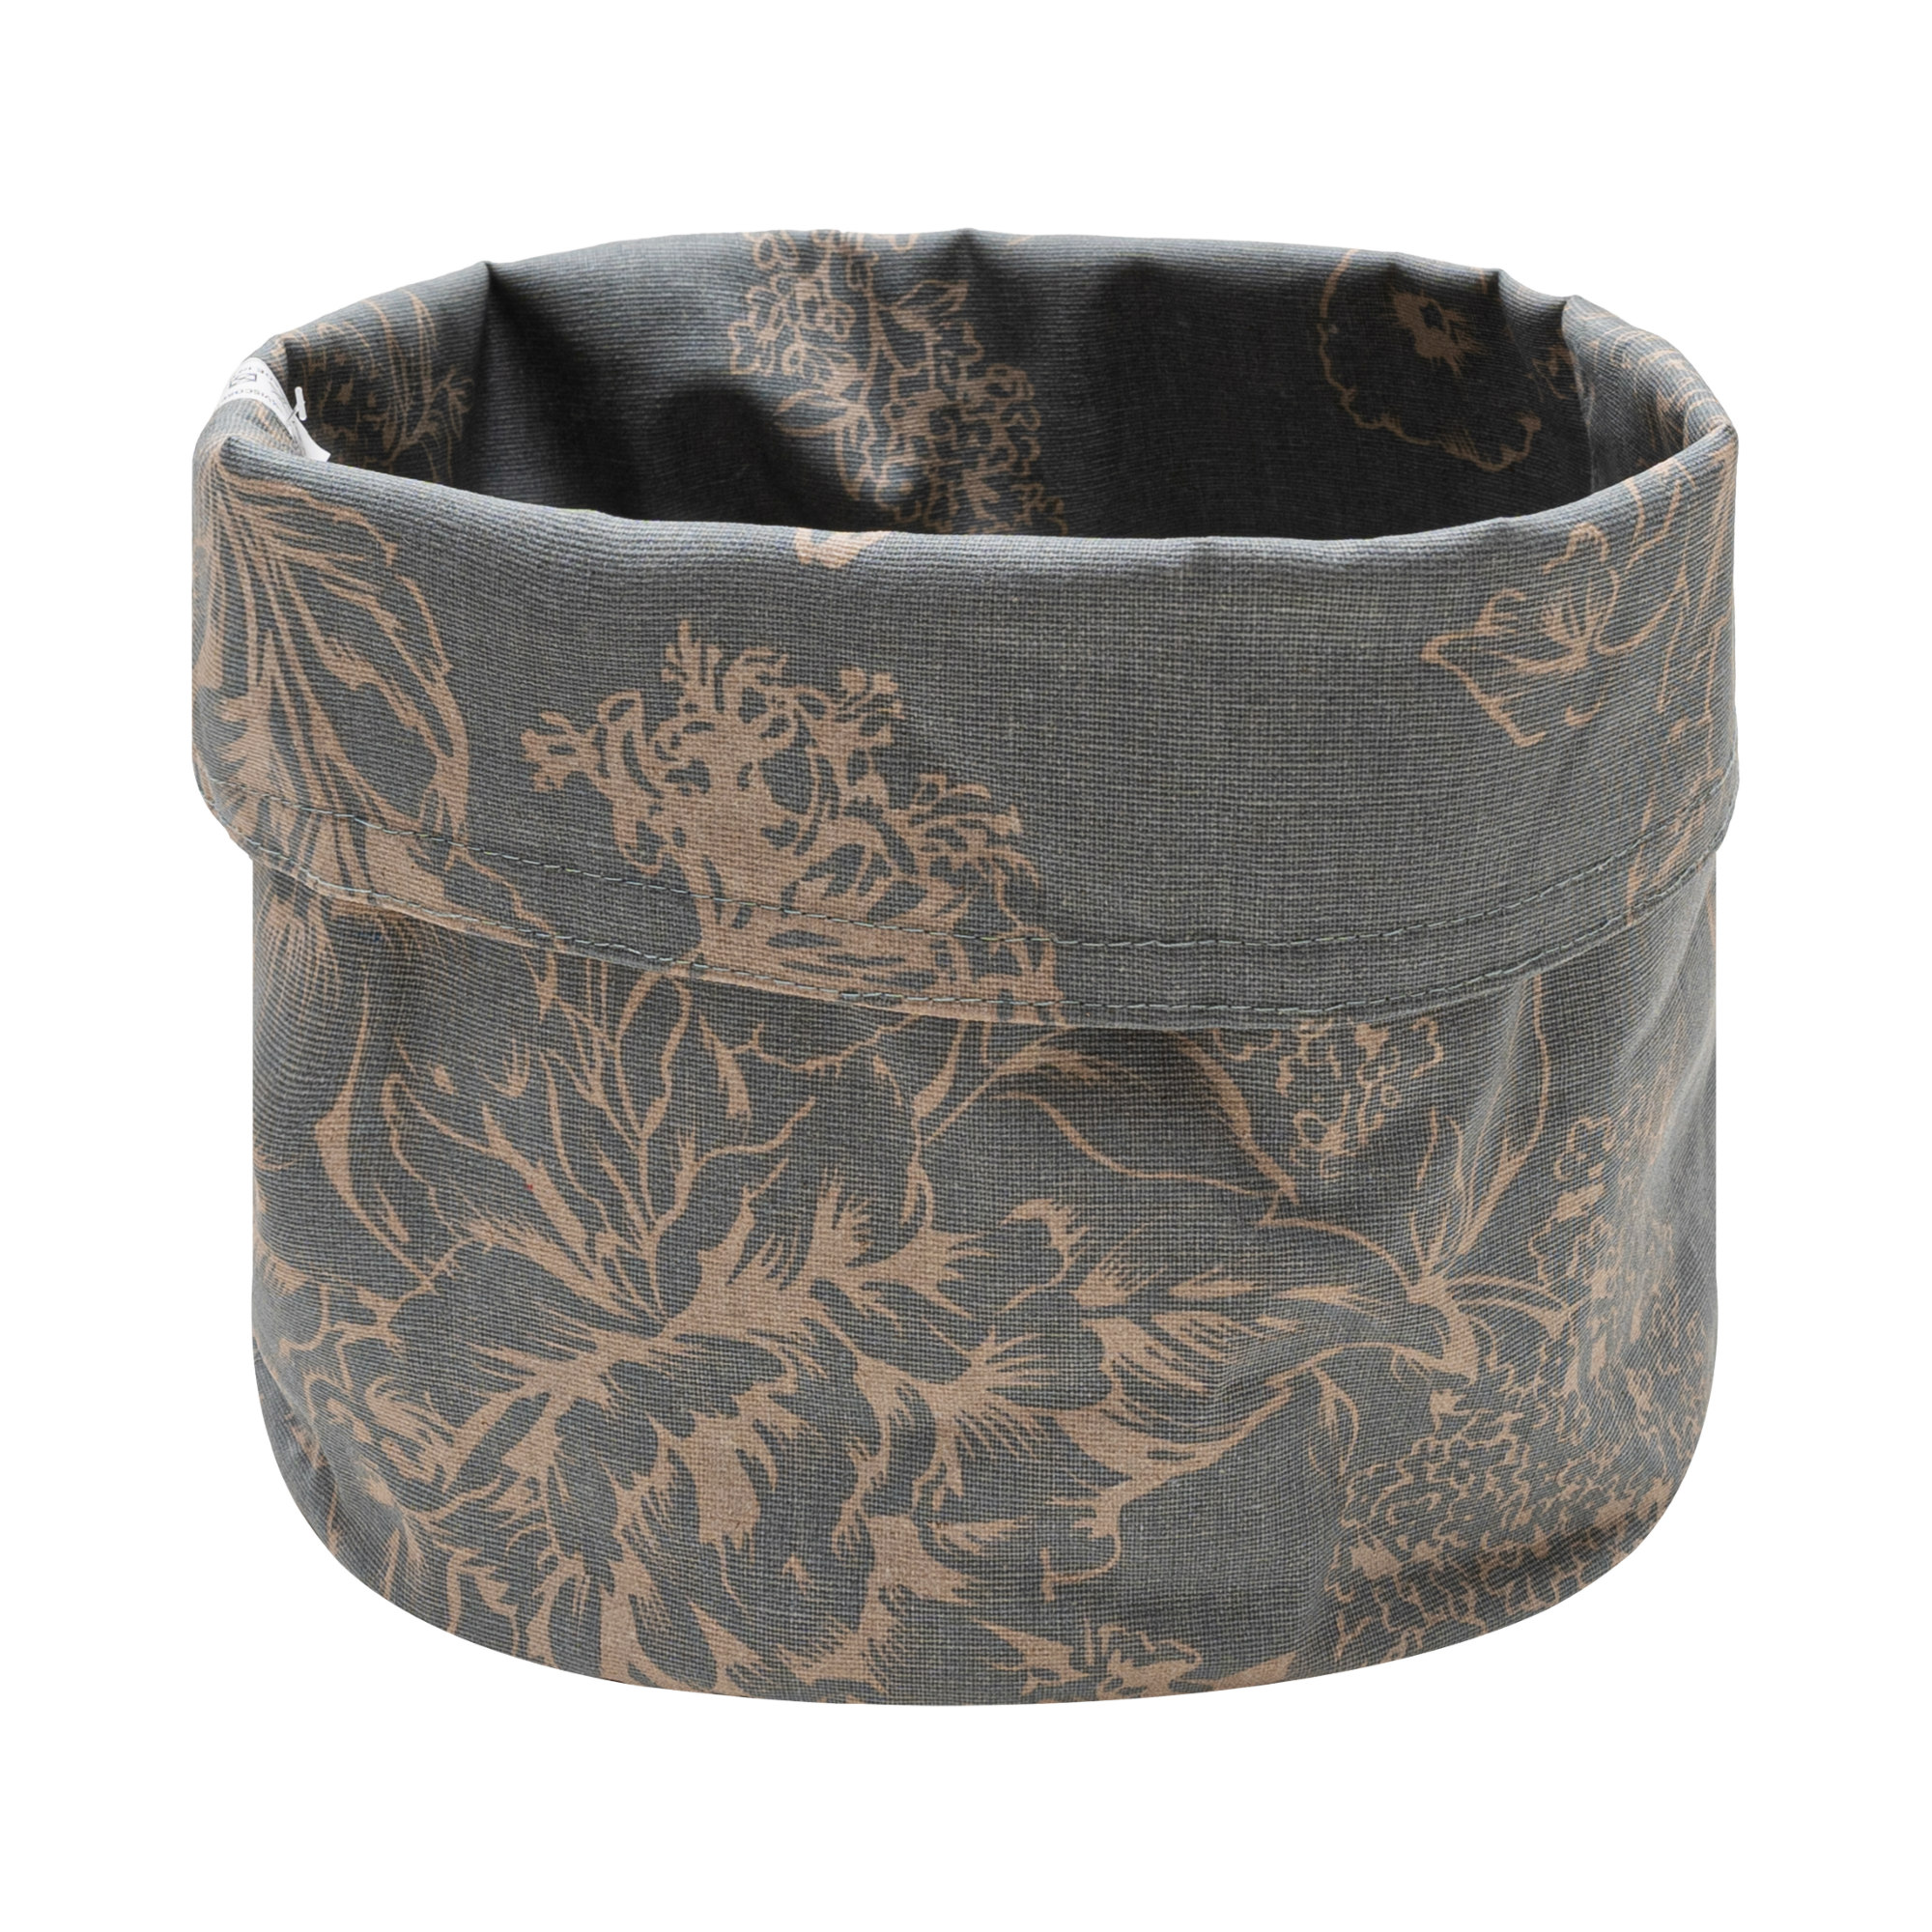 Blossom or Seed Coated Fabric Bread Basket/Fabric Storage Basket. Anti-Stain/Waterproof/Spill Proof. Multisize & Design